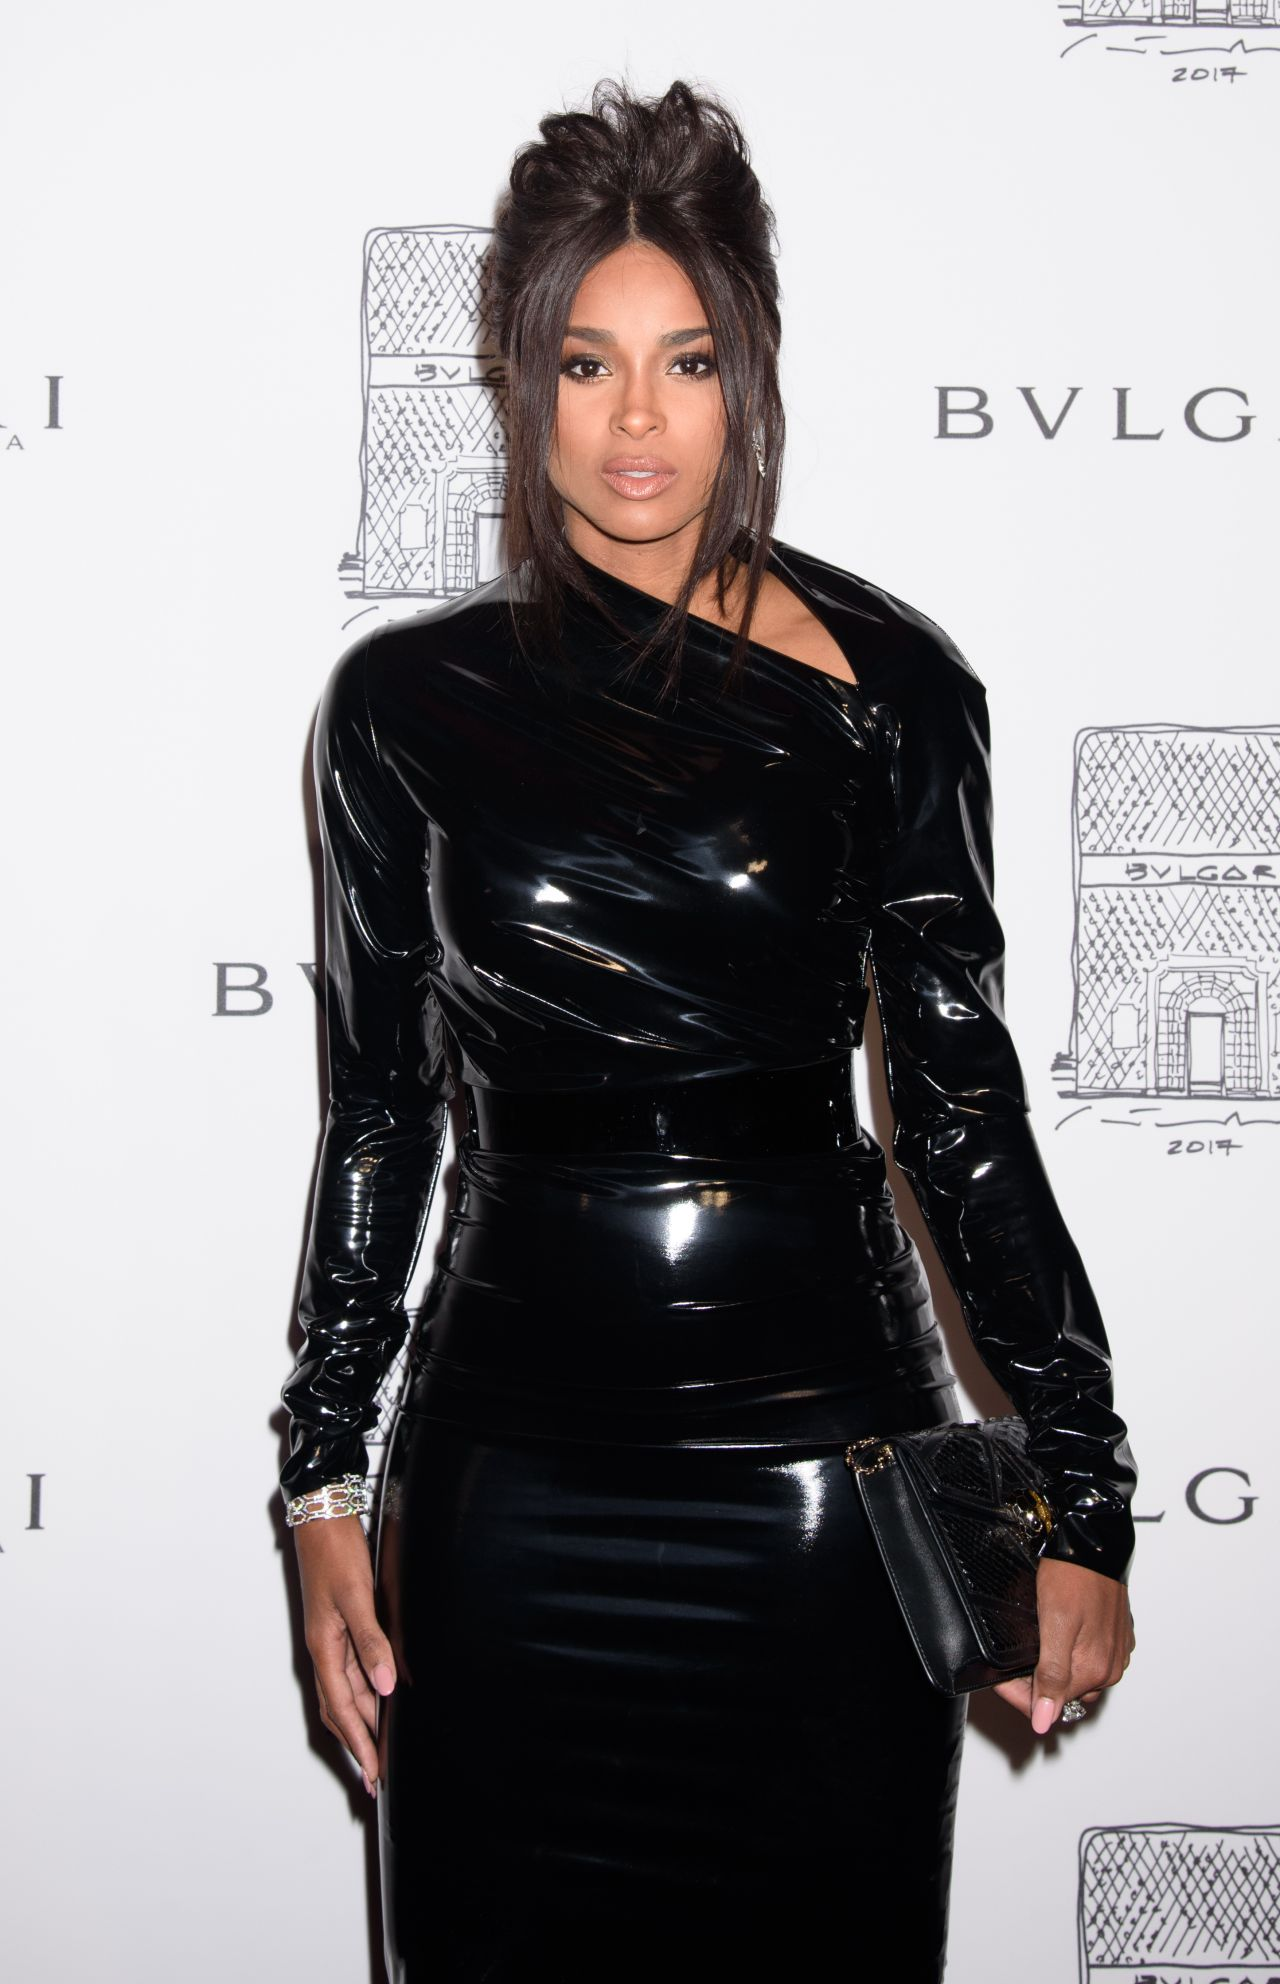 Ciara In Instyle Magazine April 2019 Issue: Bulgari Flagship Store Opening Celebration In New